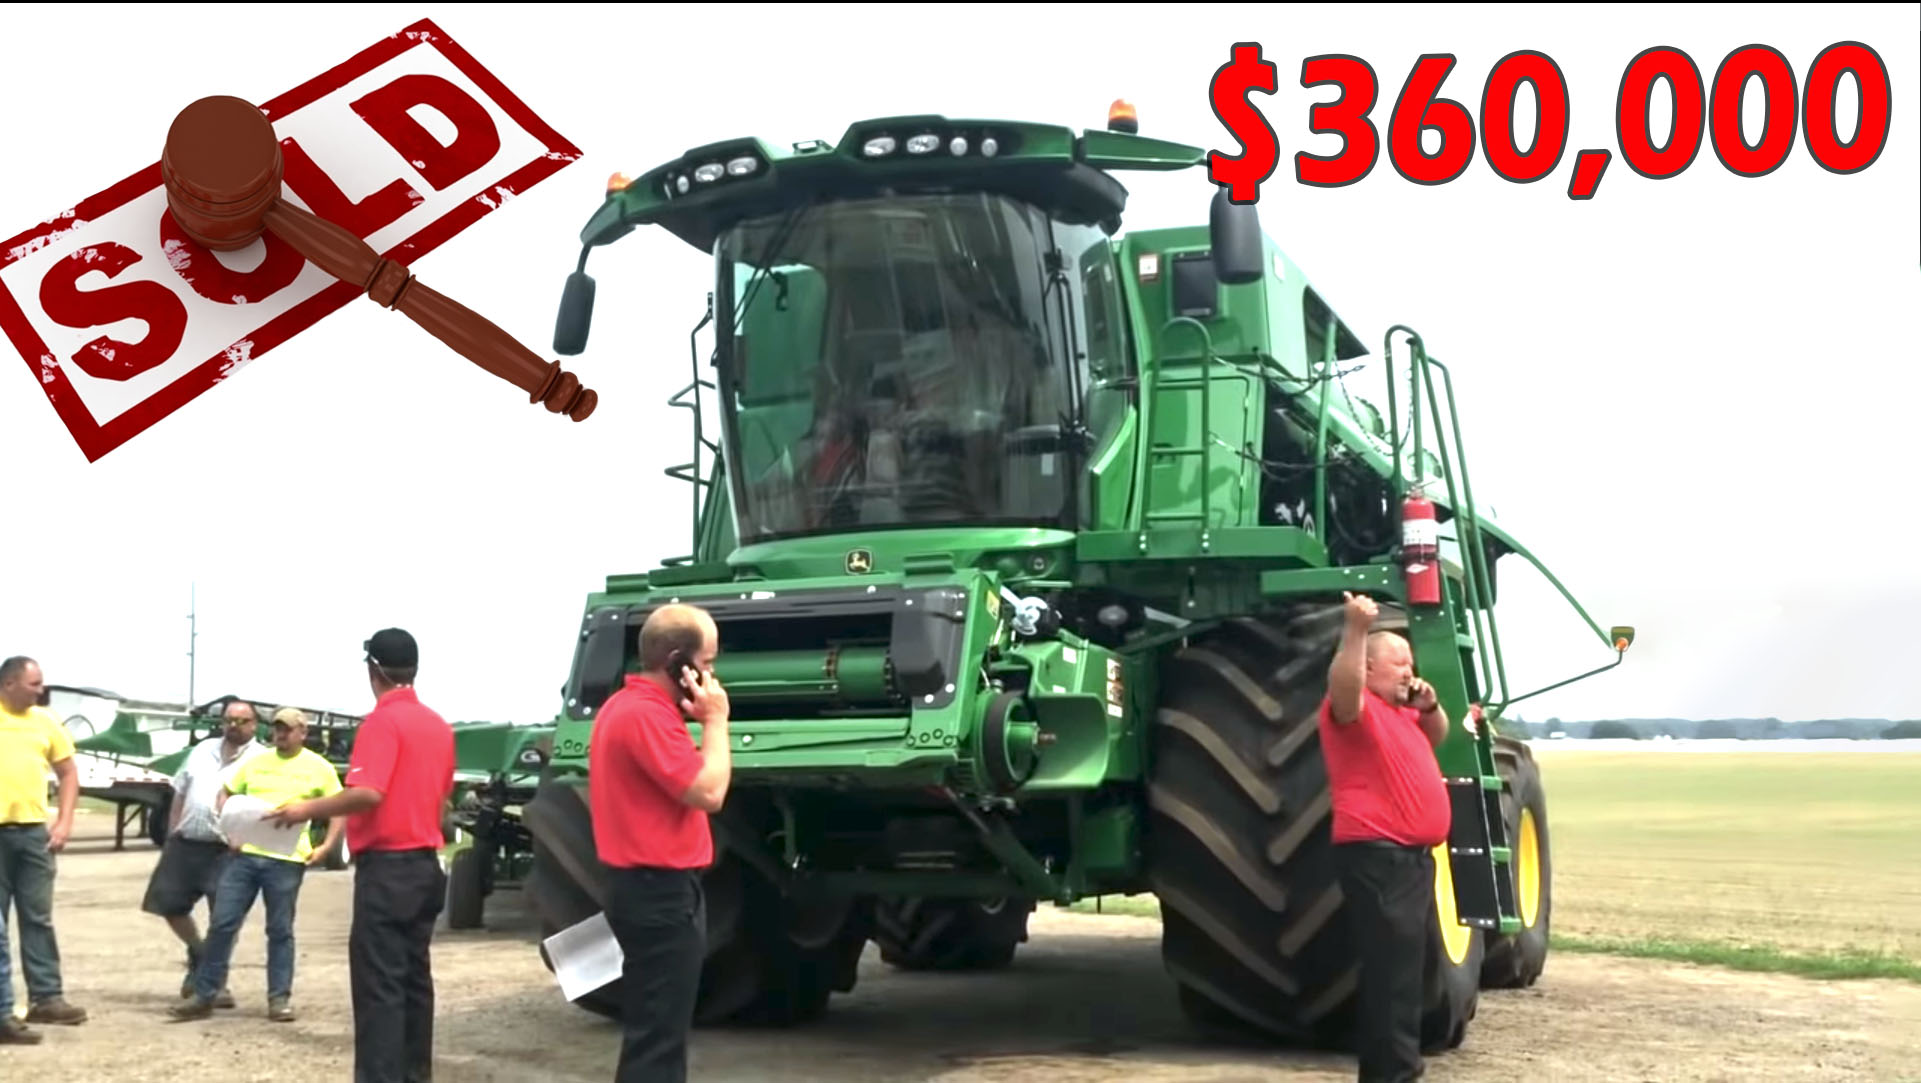 RECORD PRICE: 2017 John Deere S680 Combine with 4 Sep. Hours Sold $360K on Wayland, MI Auction